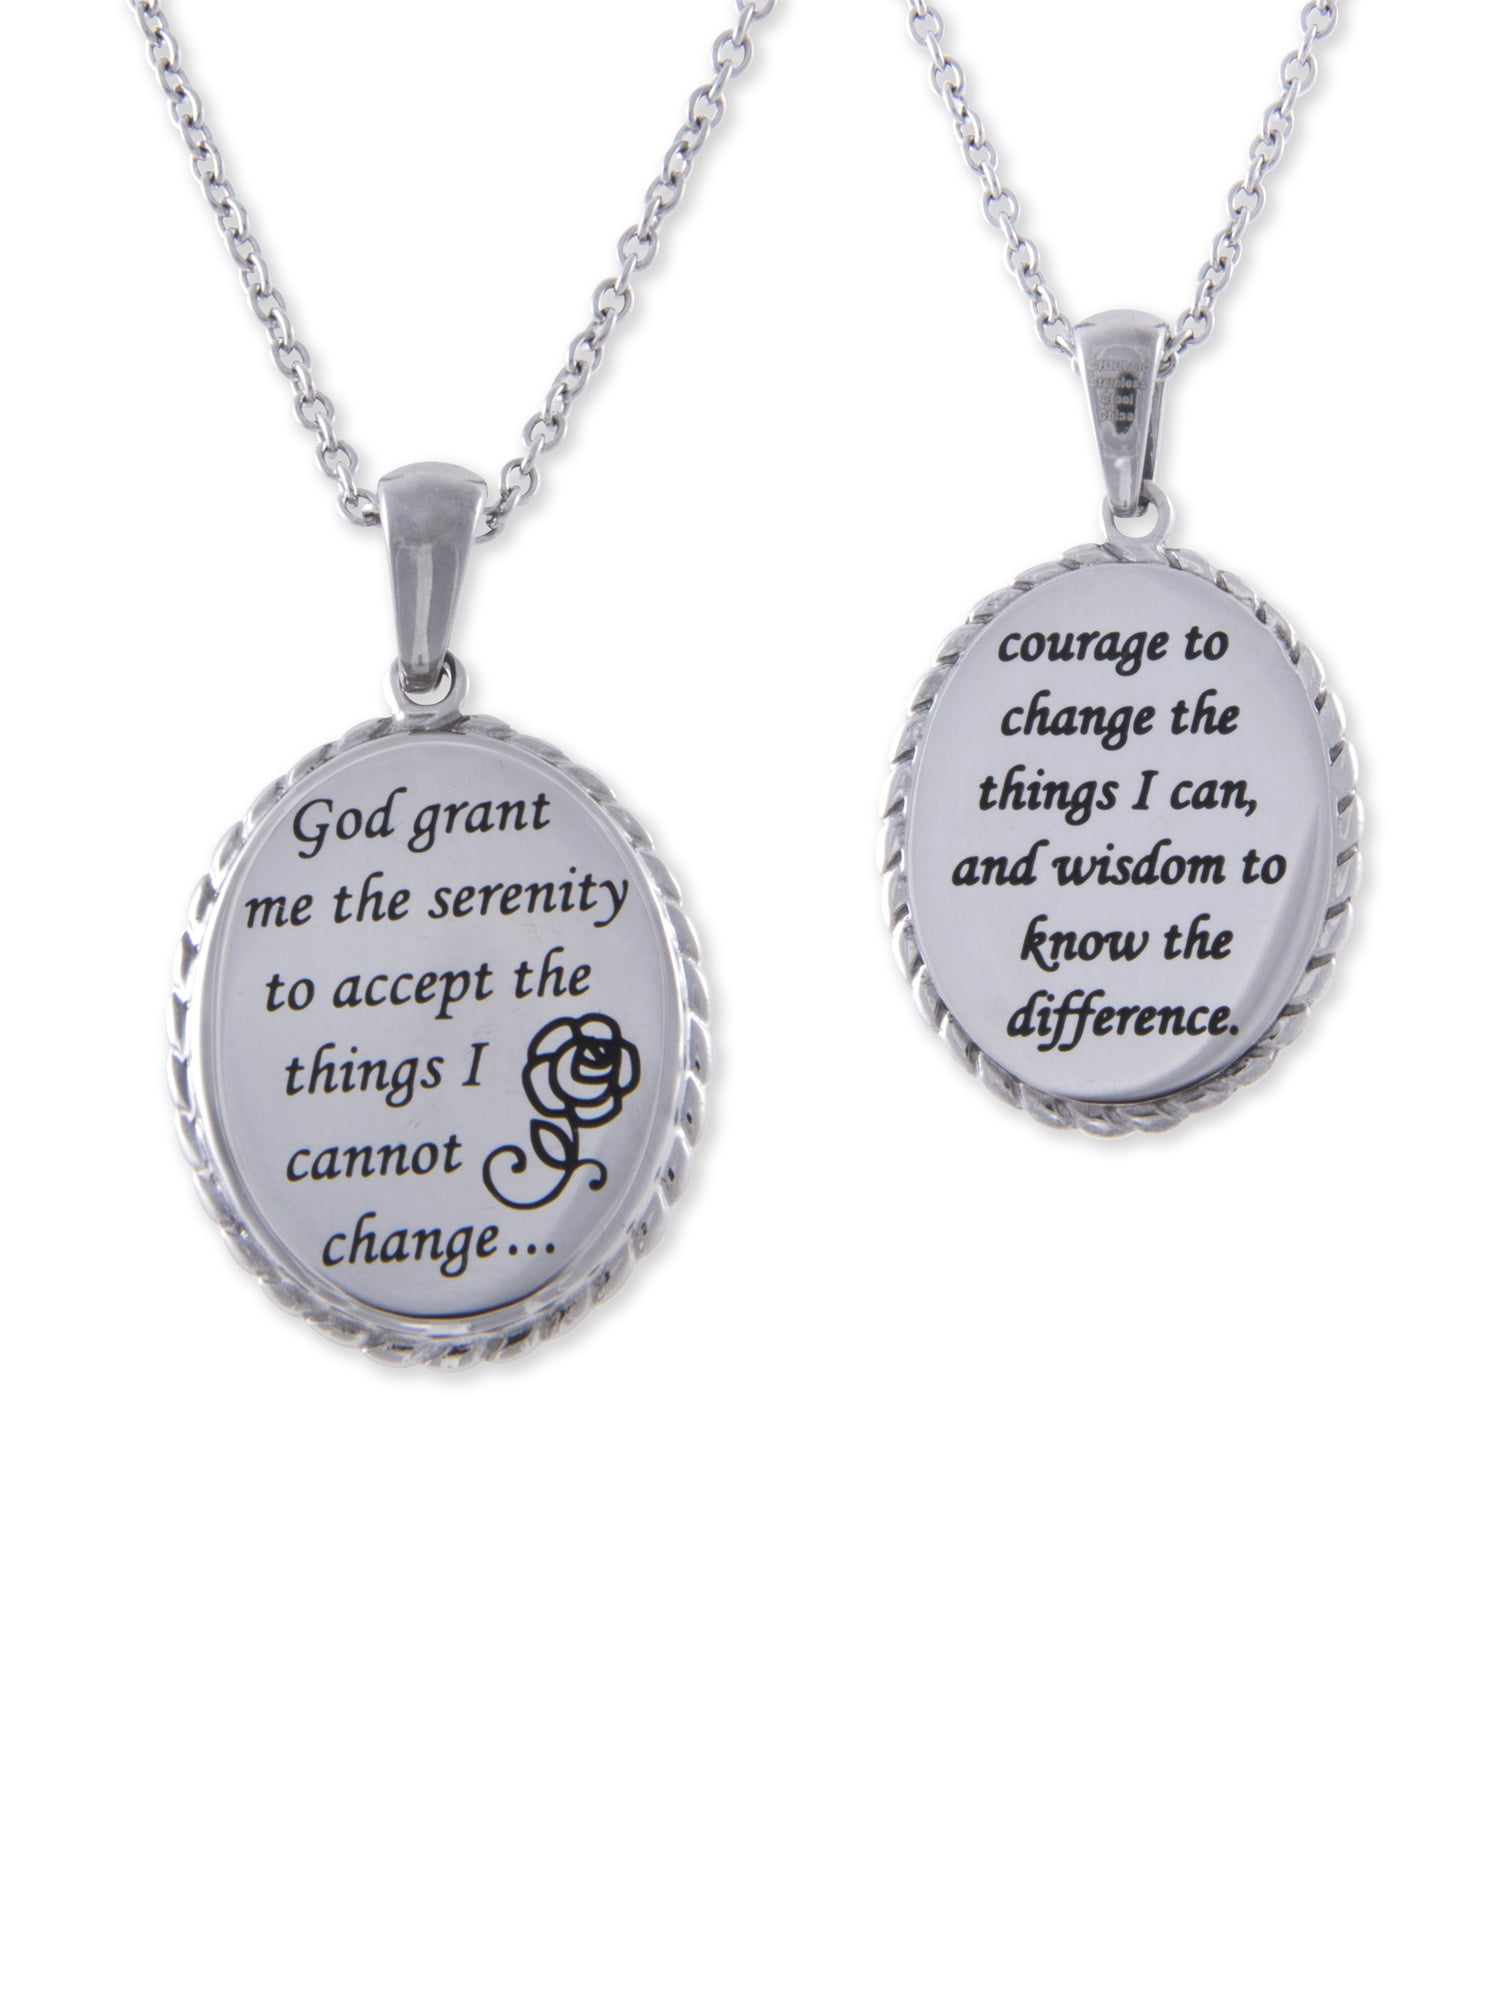 aunt pendants necklace serenity pendant angelstar rose magnifier prayer